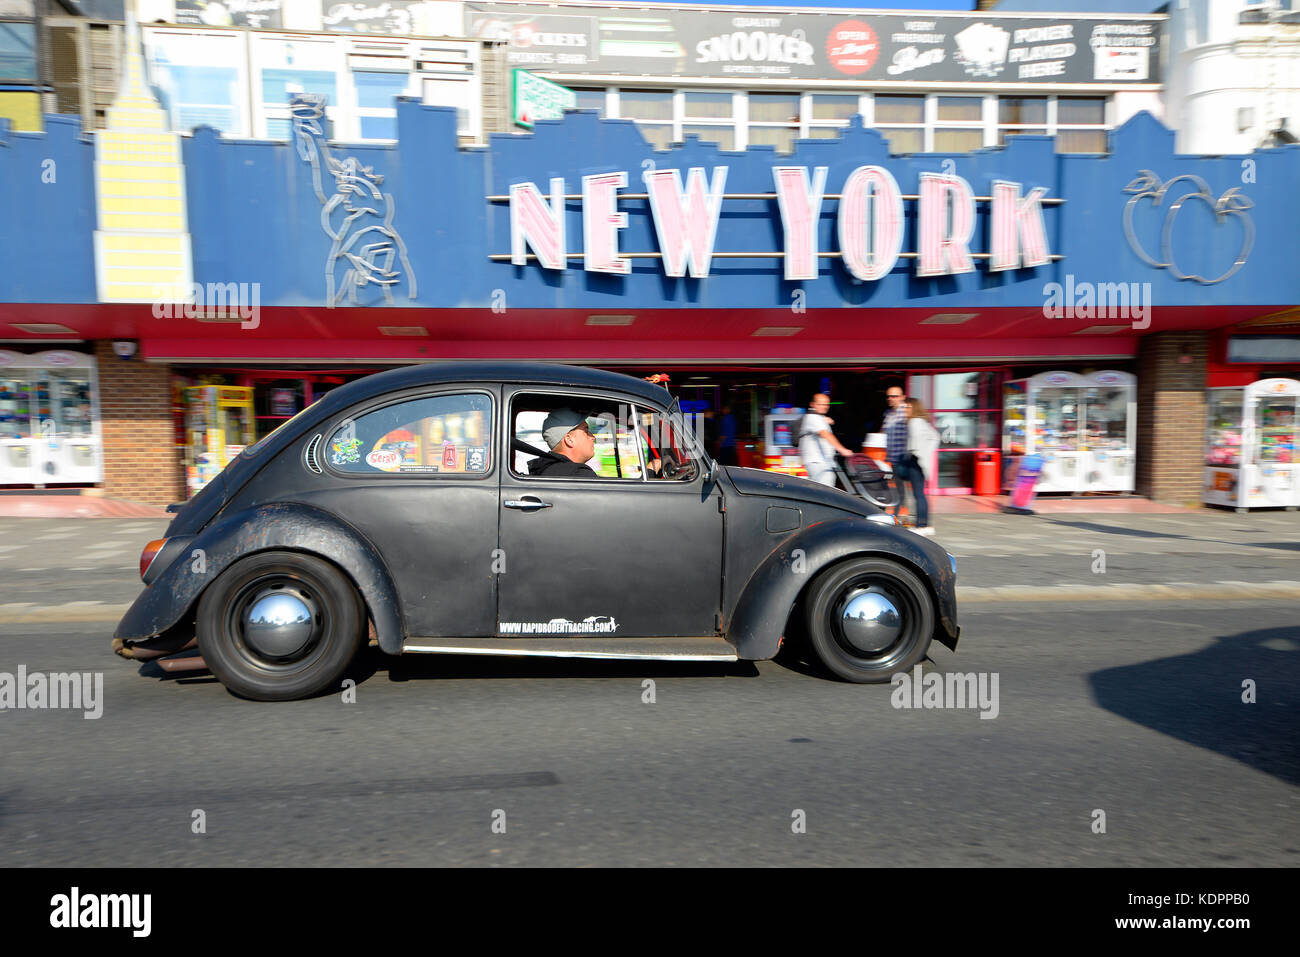 vw-beetle-passing-new-york-amusement-arcade-during-a-classic-car-show-KDPPB0.jpg